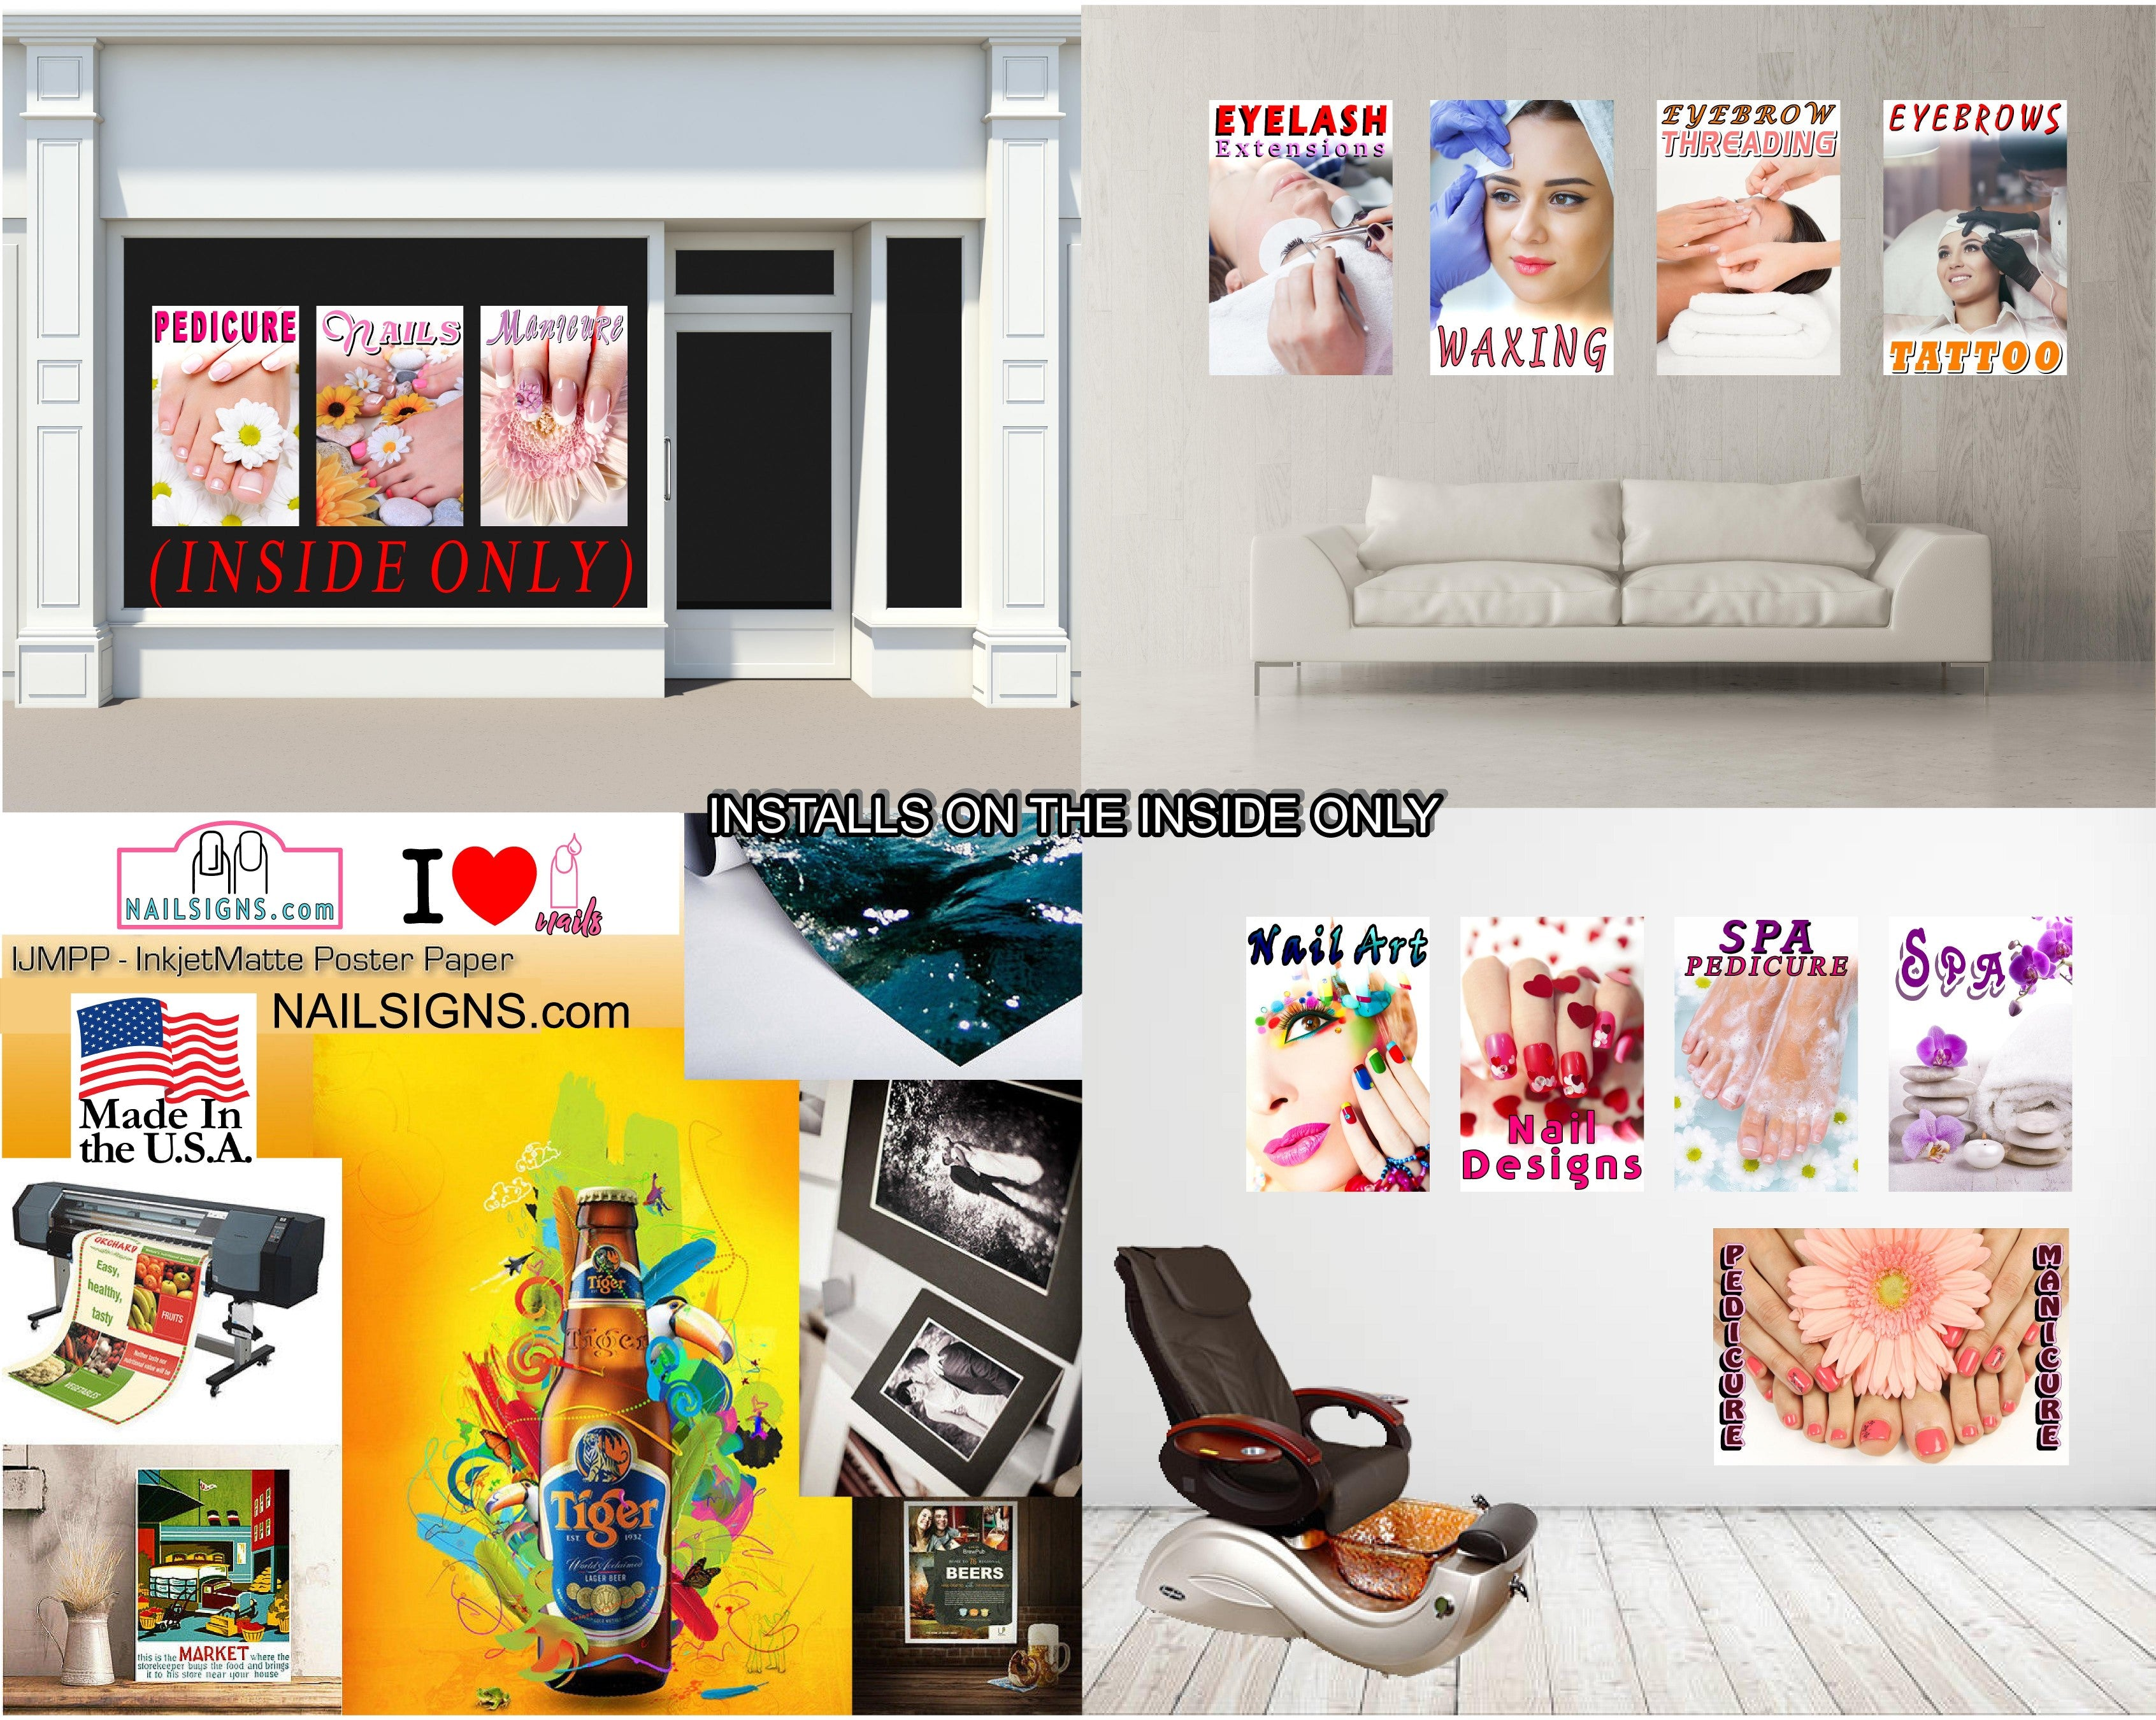 Salon 11 Photo-Realistic Paper Poster Premium Matte Interior Inside Sign Wall Window Non-Laminated Men Haircut Barber Vertical